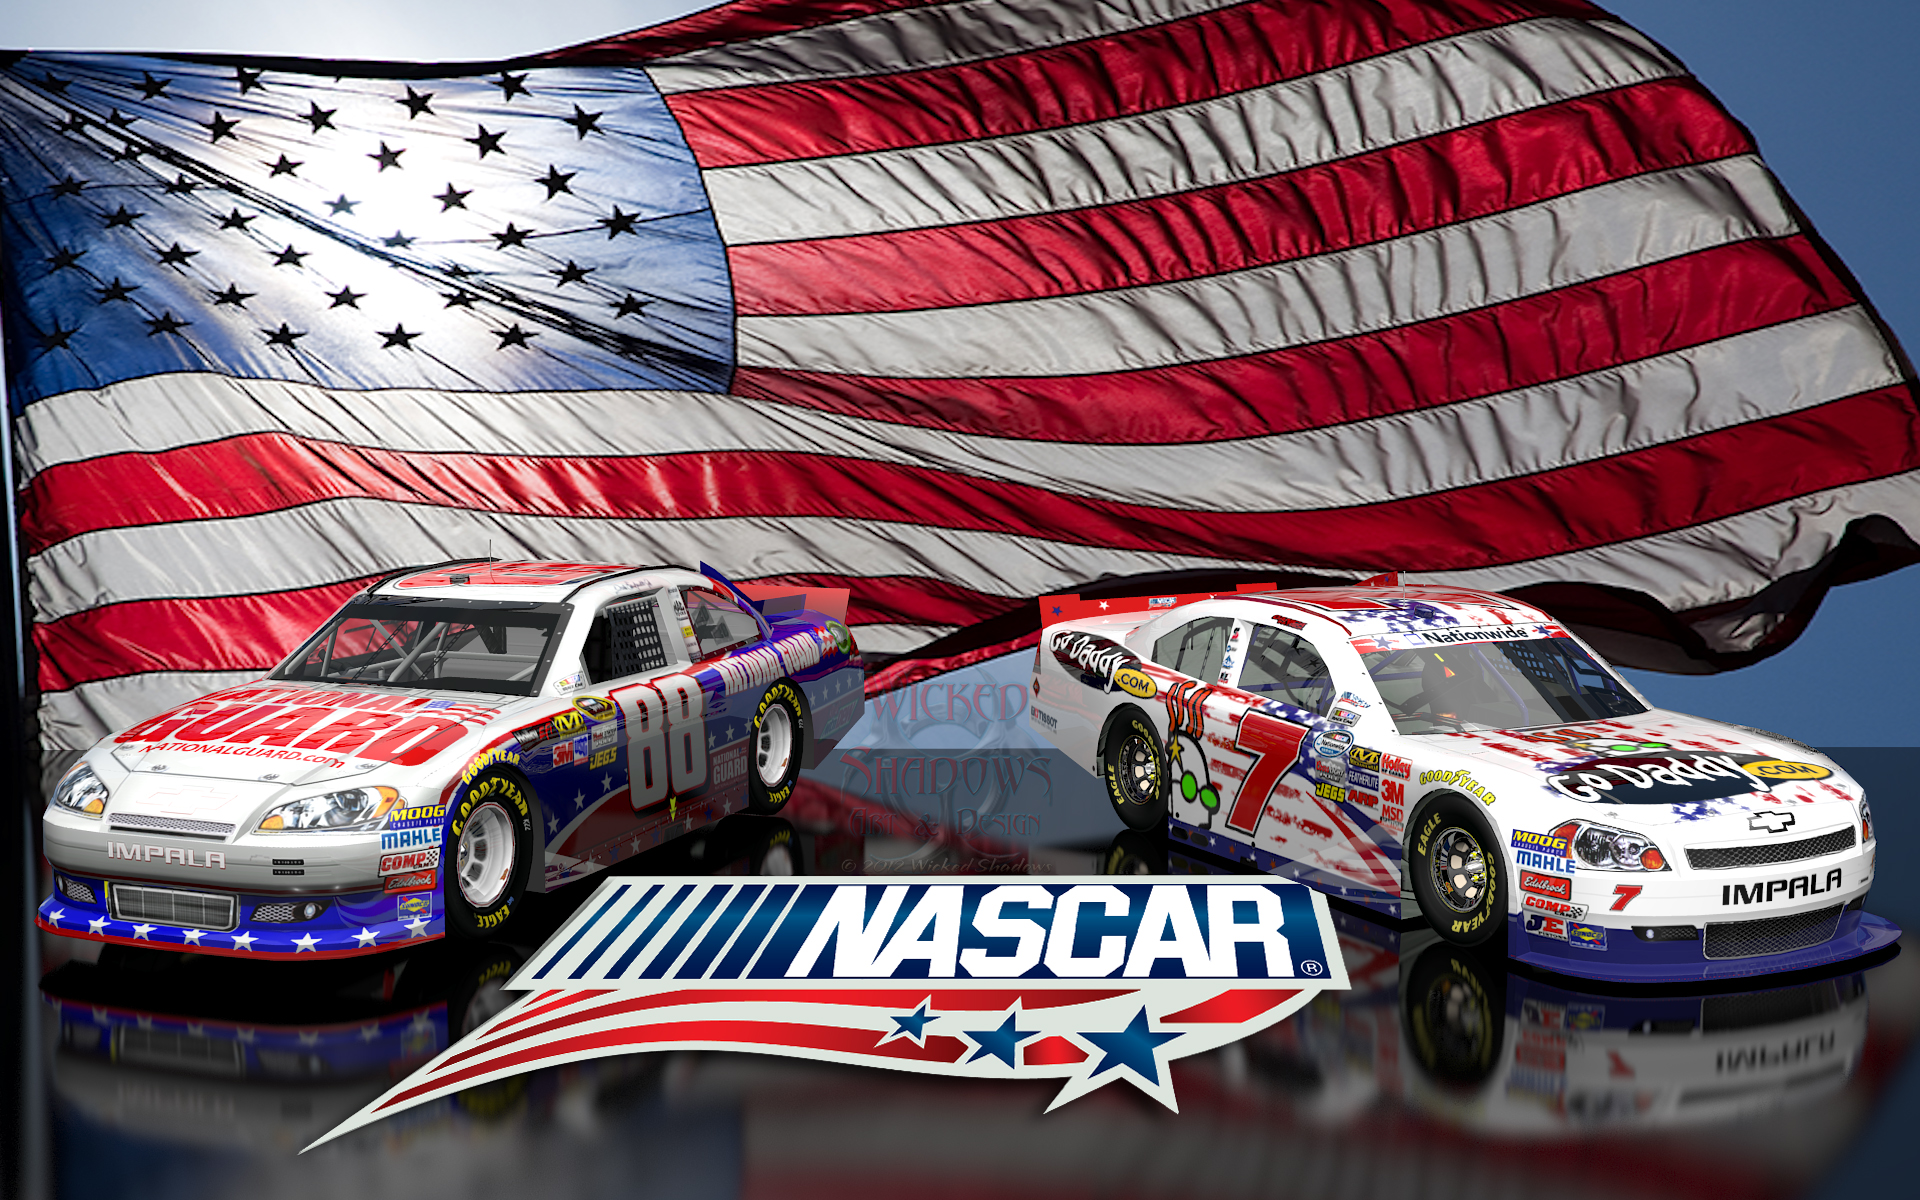 Wallpapers by wicked shadows danica patrick dale earnhardt jr danica patrick dale earnhardt jr nascar unites wallpaper voltagebd Image collections